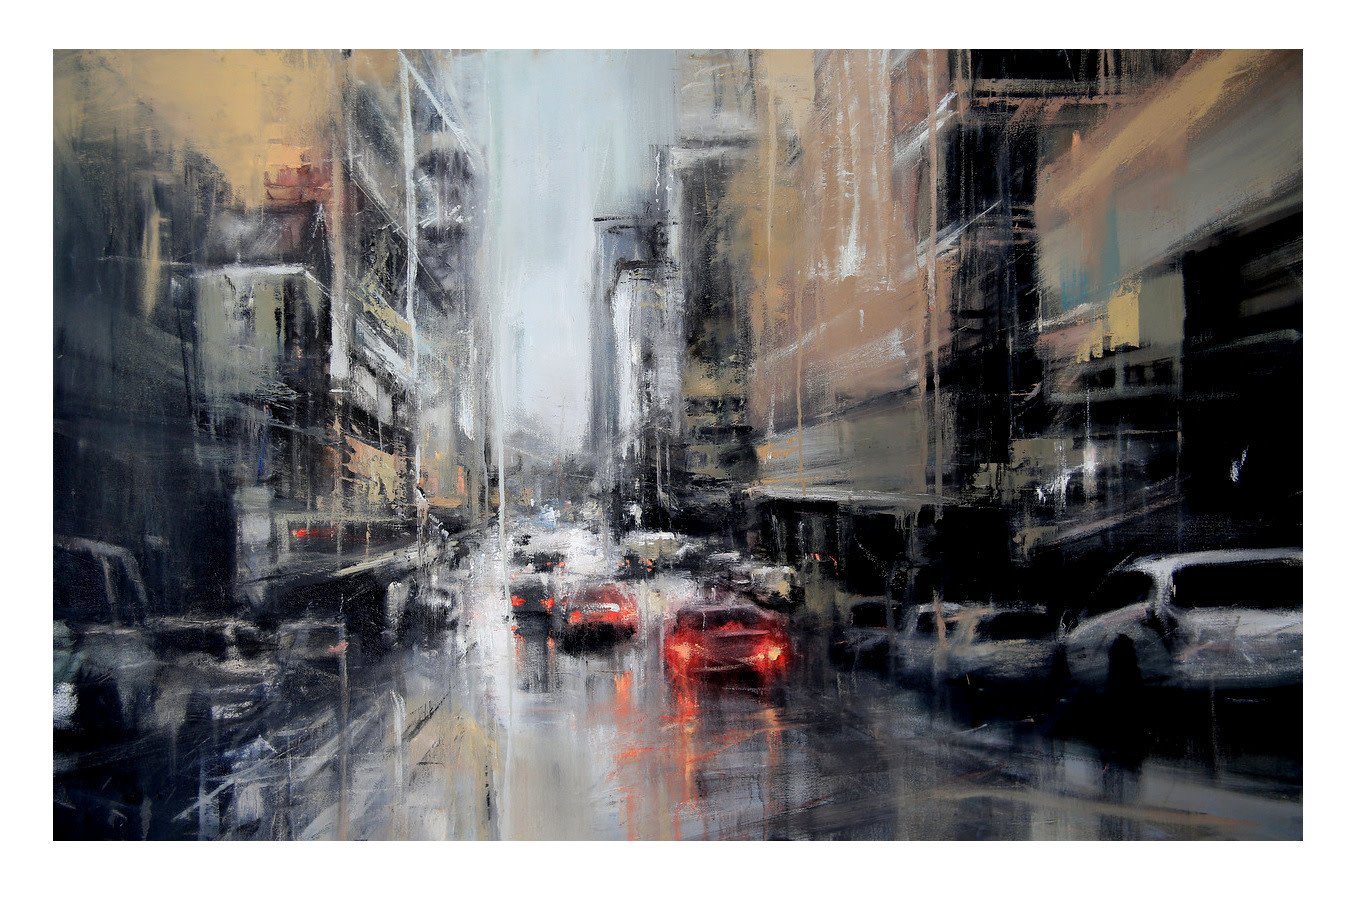 "<span class=""link fancybox-details-link""><a href=""/artists/60-peter-hall/works/4328-peter-hall-16-down-town-loop-street-capetown/"">View Detail Page</a></span><div class=""artist""><strong>Peter Hall</strong></div> <div class=""title""><em>16 Down Town Loop Street Capetown</em></div> <div class=""medium"">Oil on Canvas</div> <div class=""dimensions"">90x140cm</div><div class=""copyright_line"">Copyright The Artist</div>"